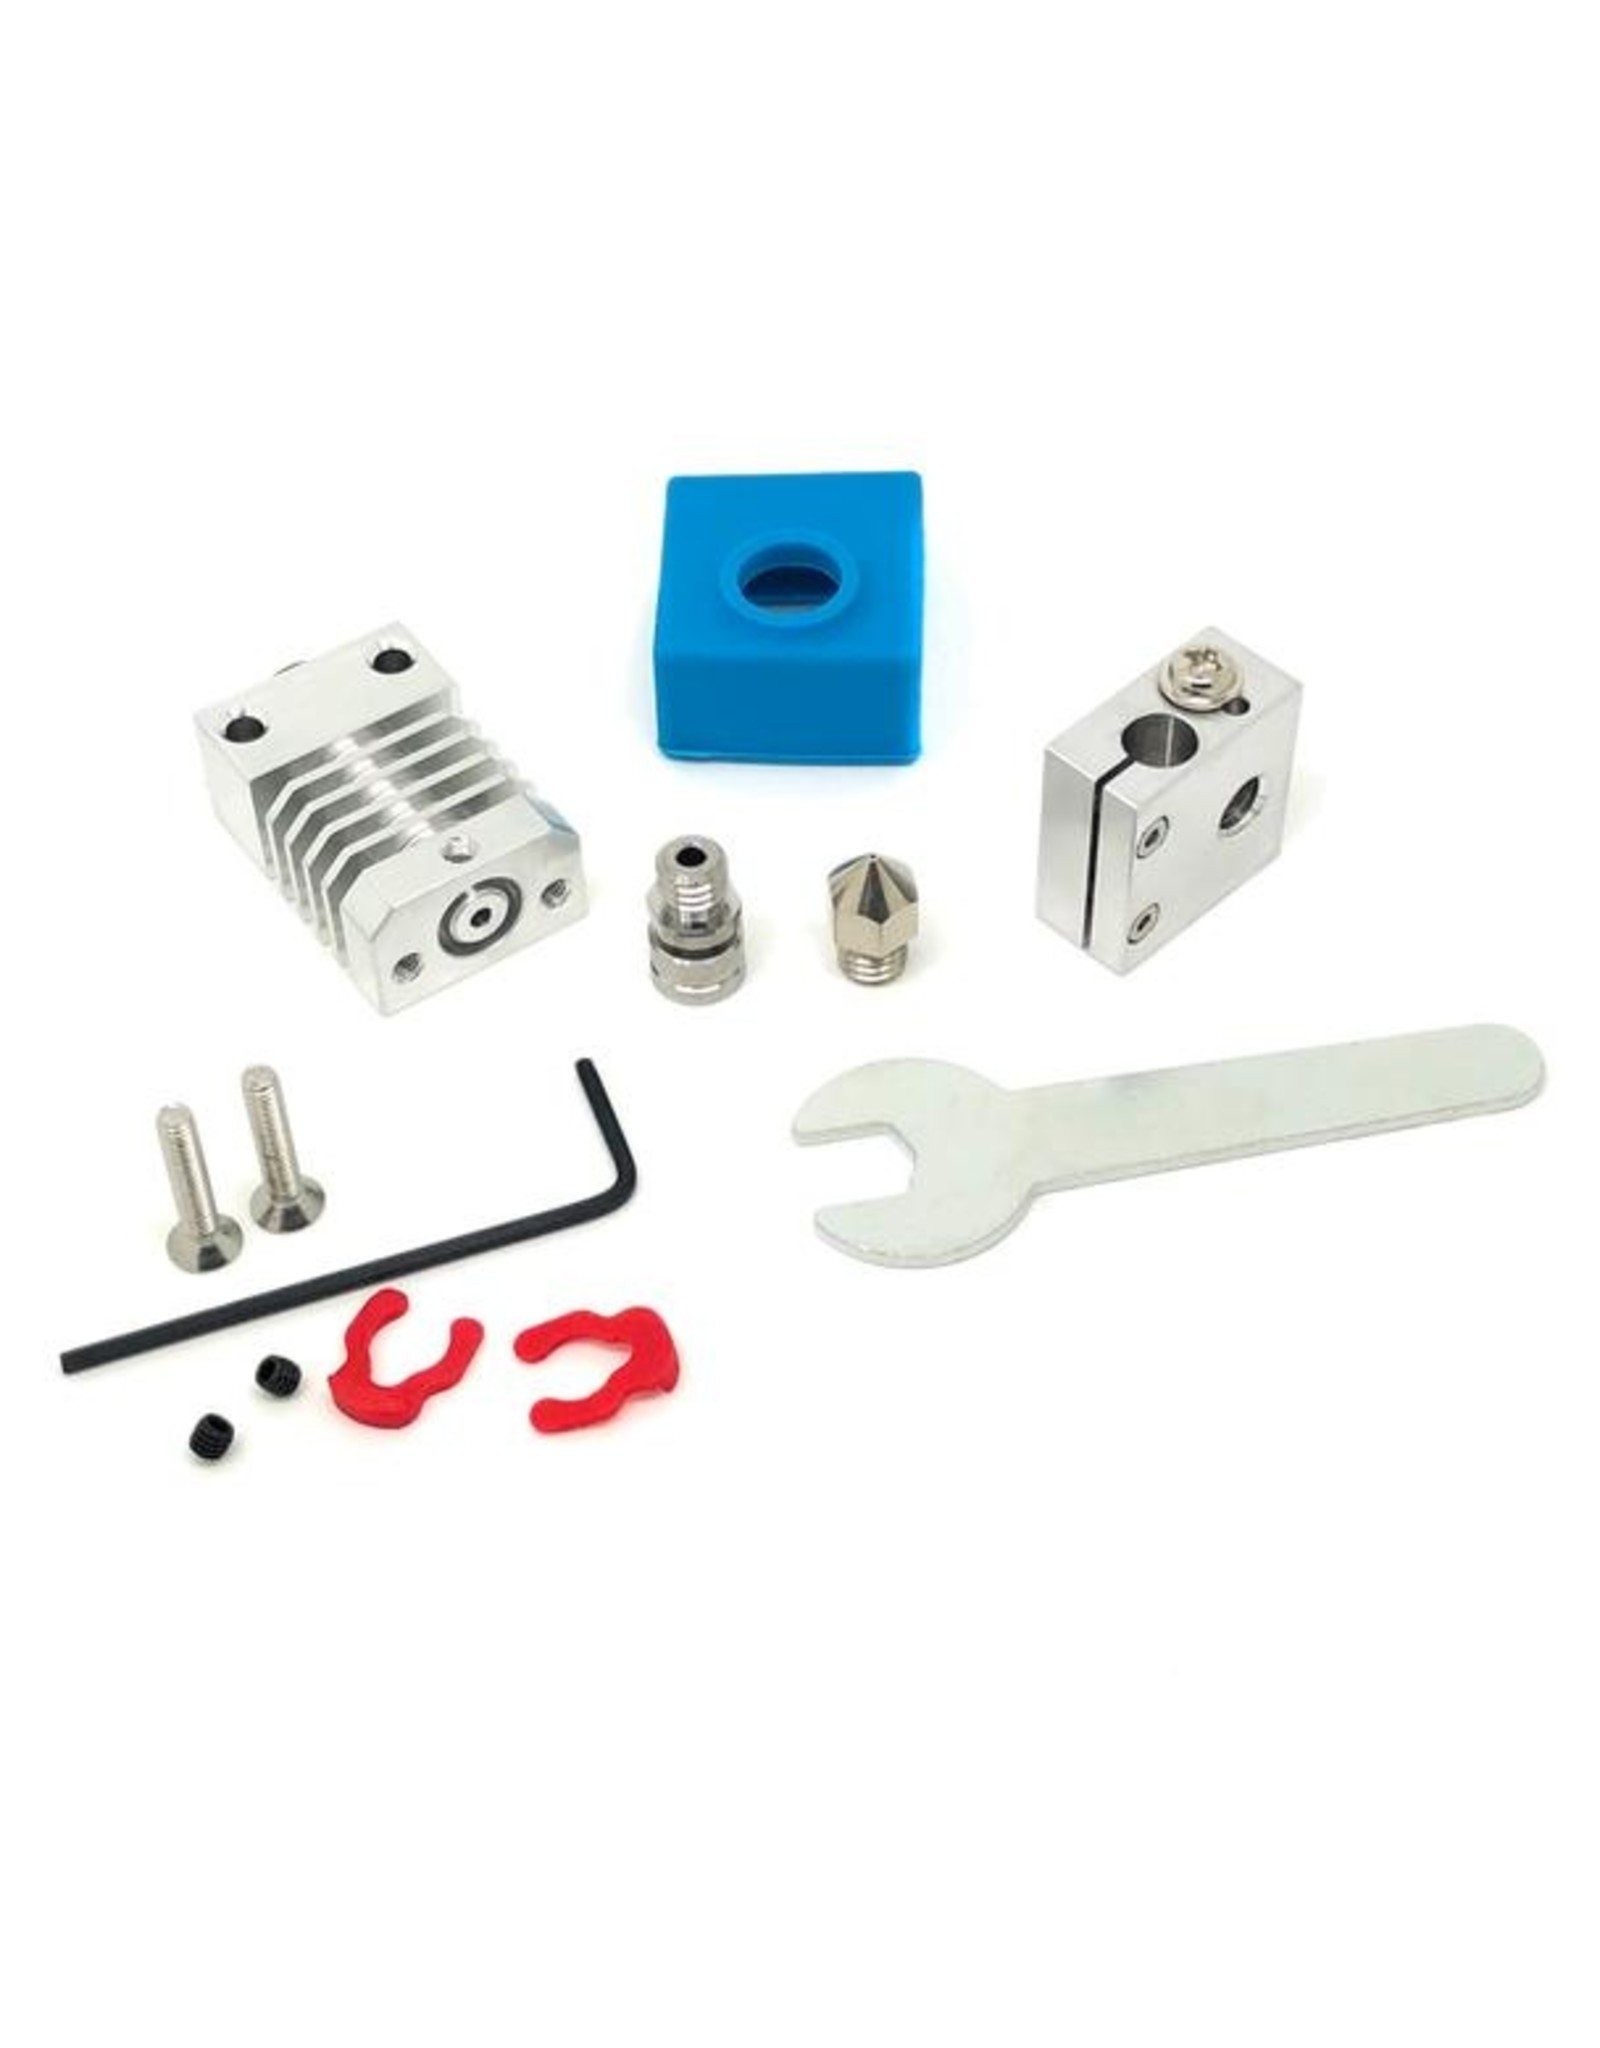 Micro Swiss All Metal Hotend Kit voor Creality CR-10 / CR10S / CR20 / Ender 2, 3, 5 Printers